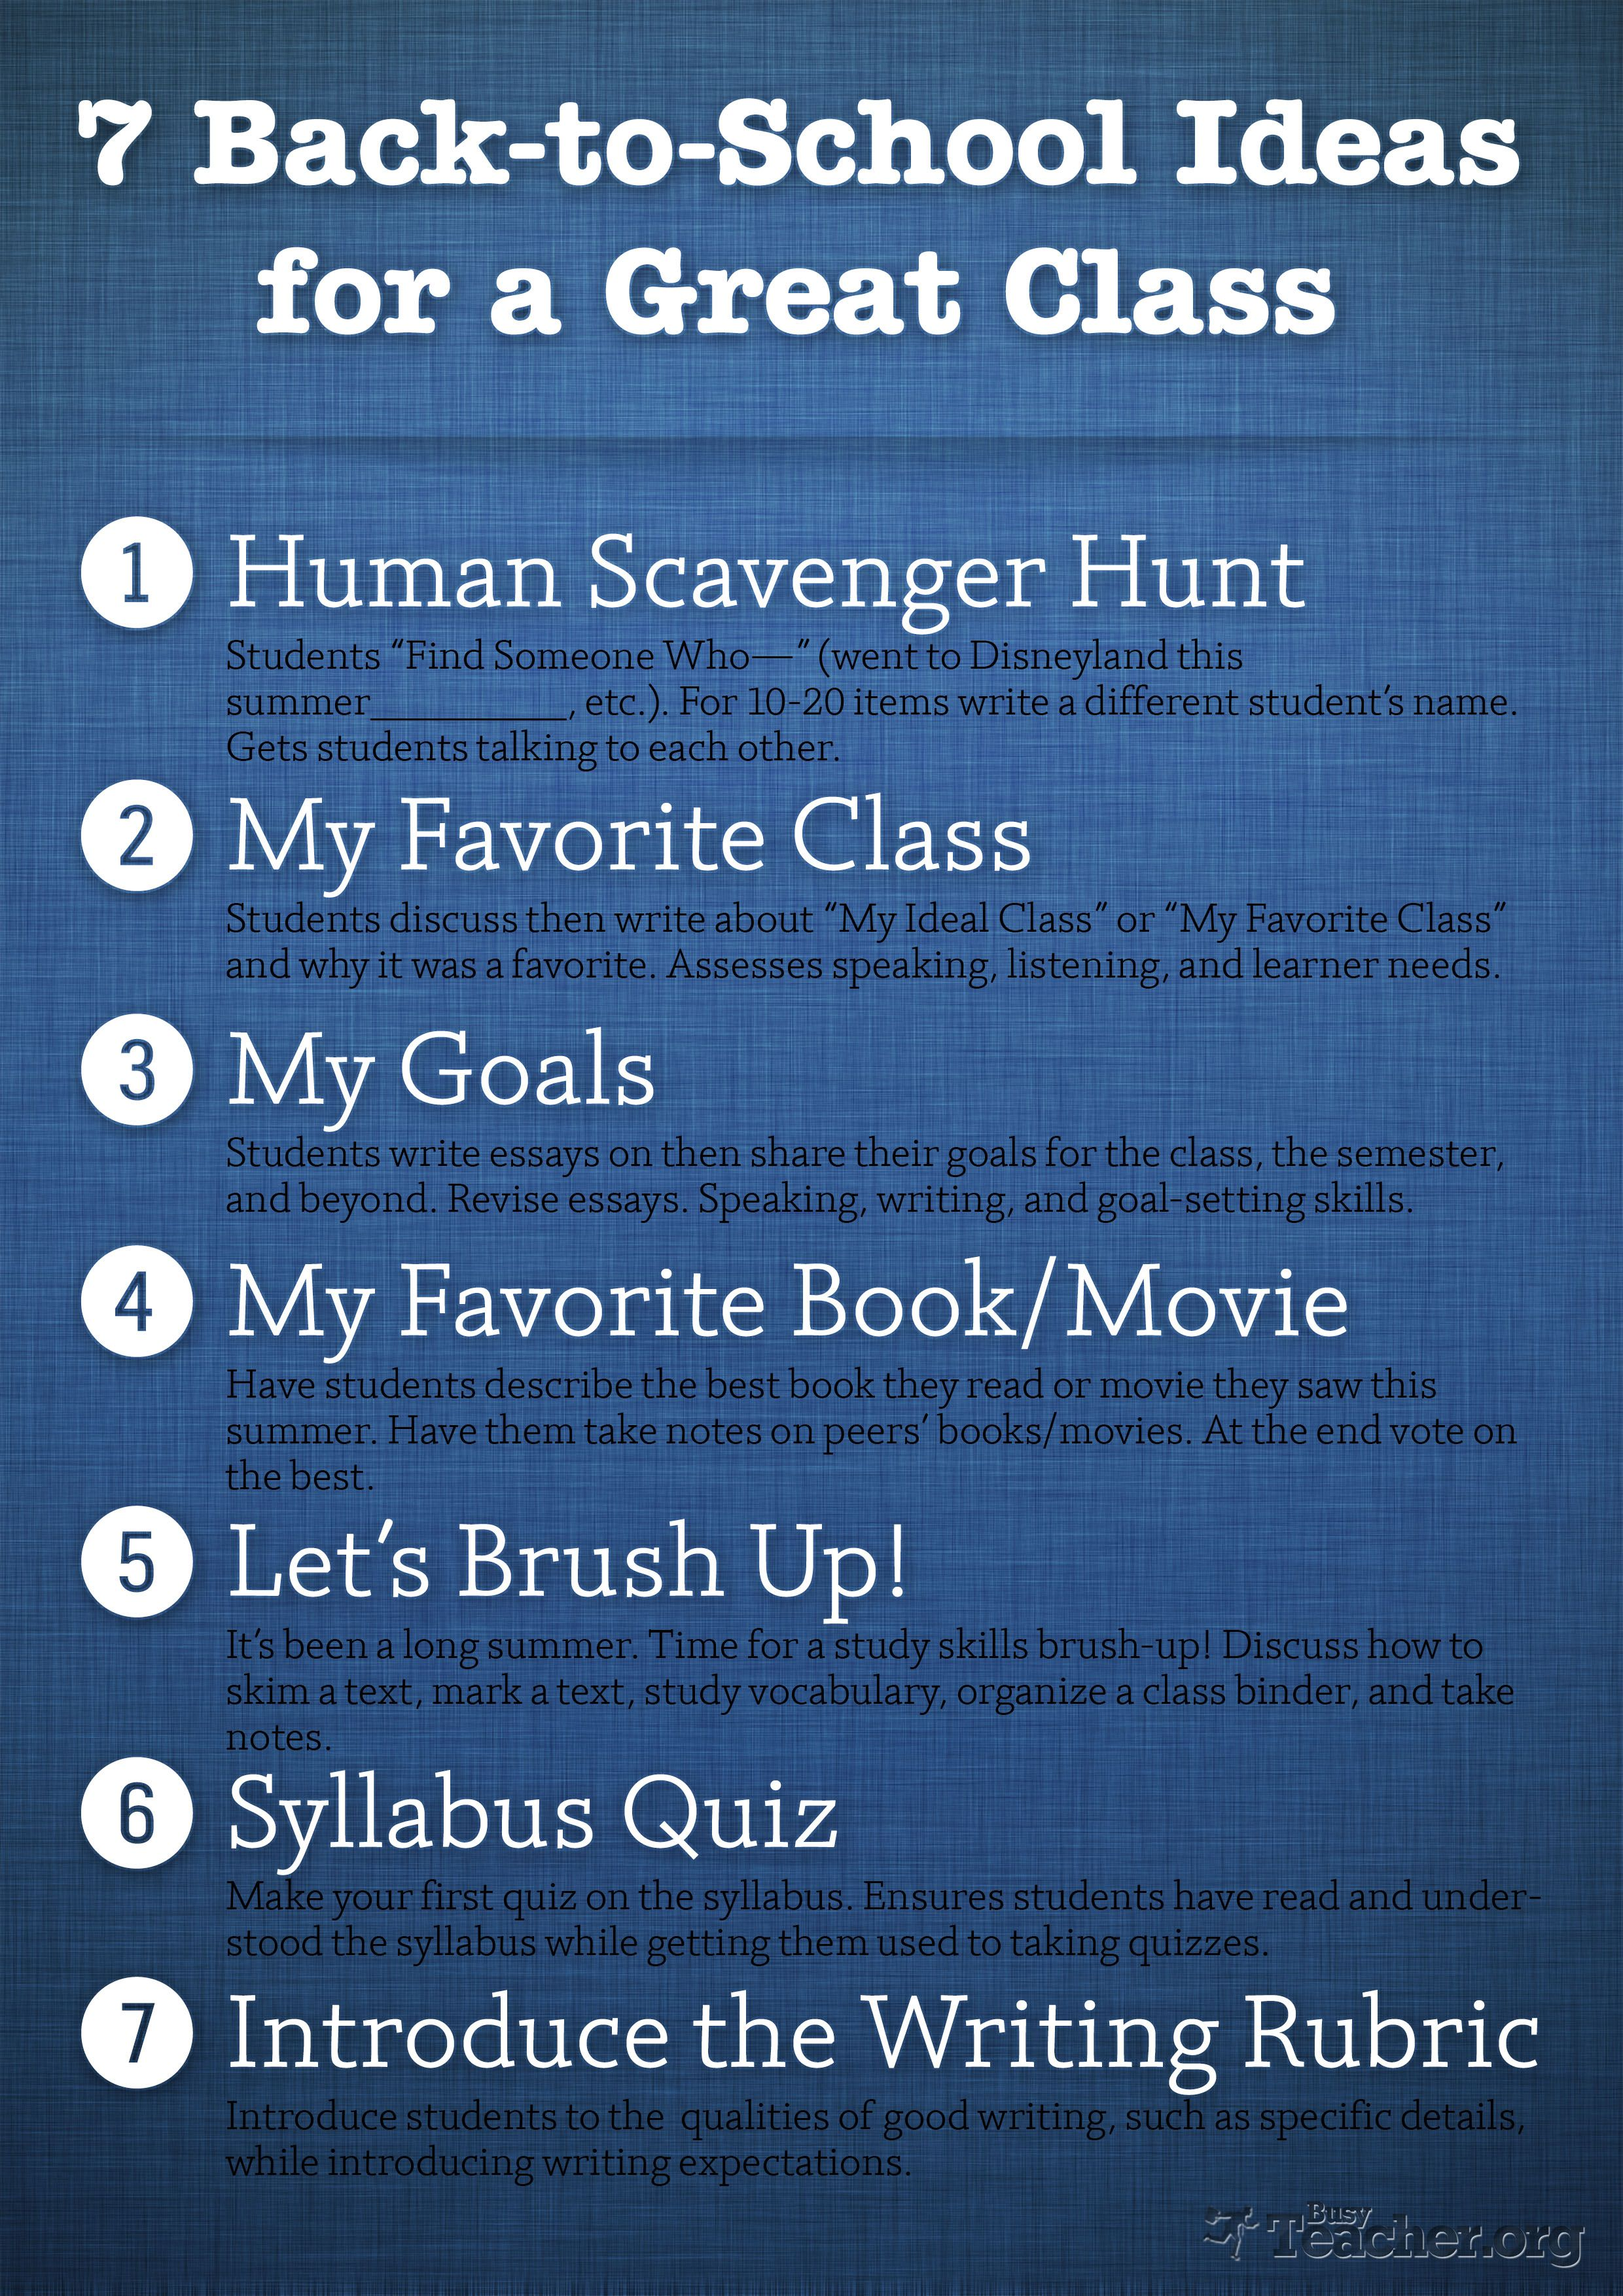 7 Back-to-School Ideas for a Great Class: Poster | Back to